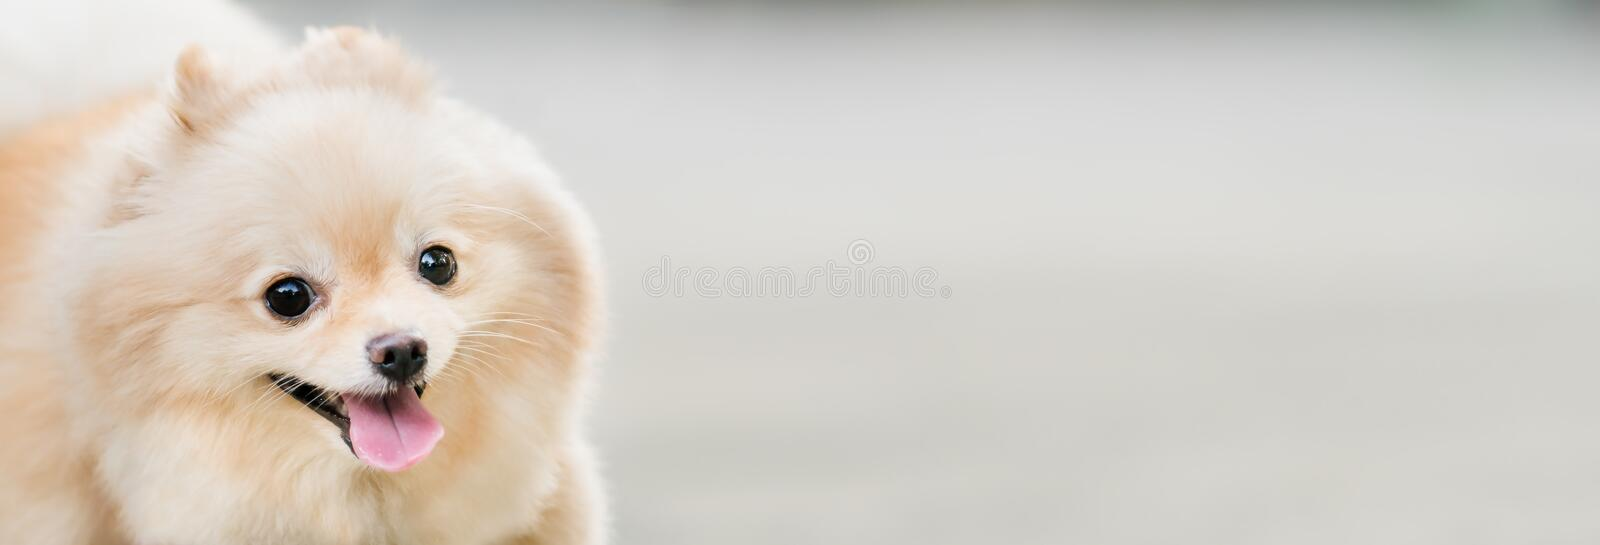 Cute pomeranian dog smiling funny, with copy space, horizontal rectangular image, focus on the eye royalty free stock photos